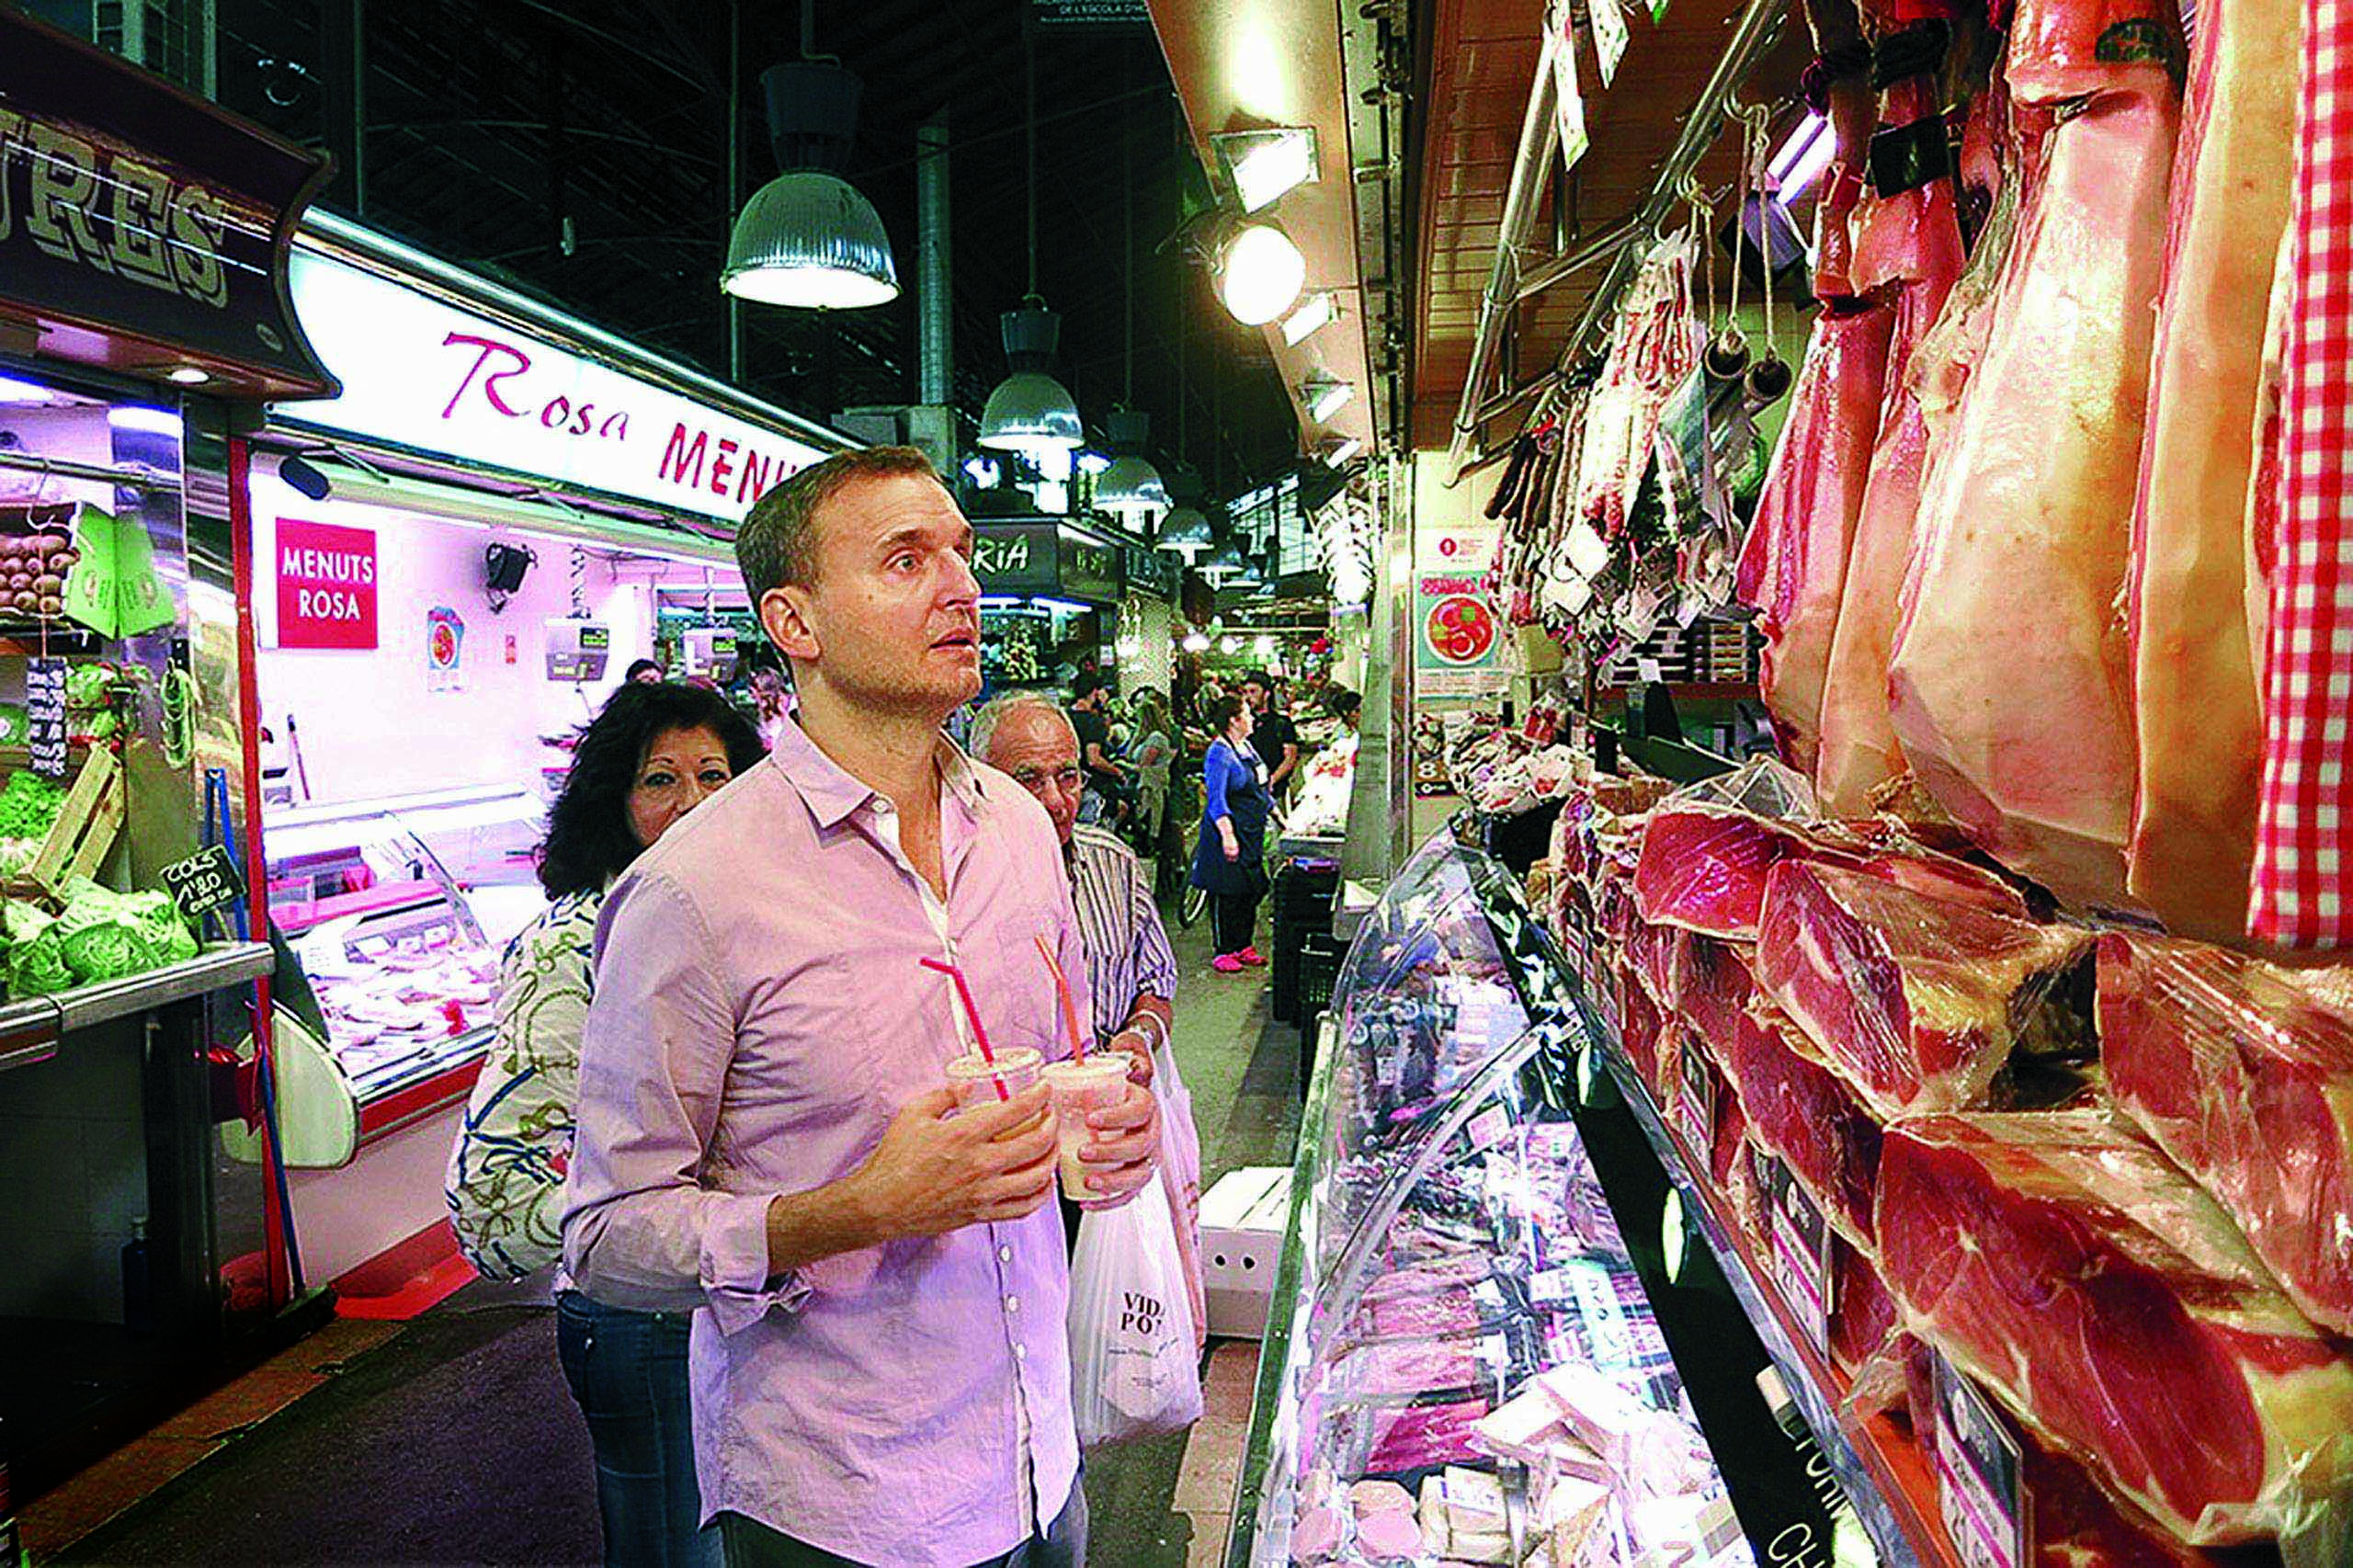 Rosenthal gazes upon Spanish ham in I'll Have What Phil's Having.